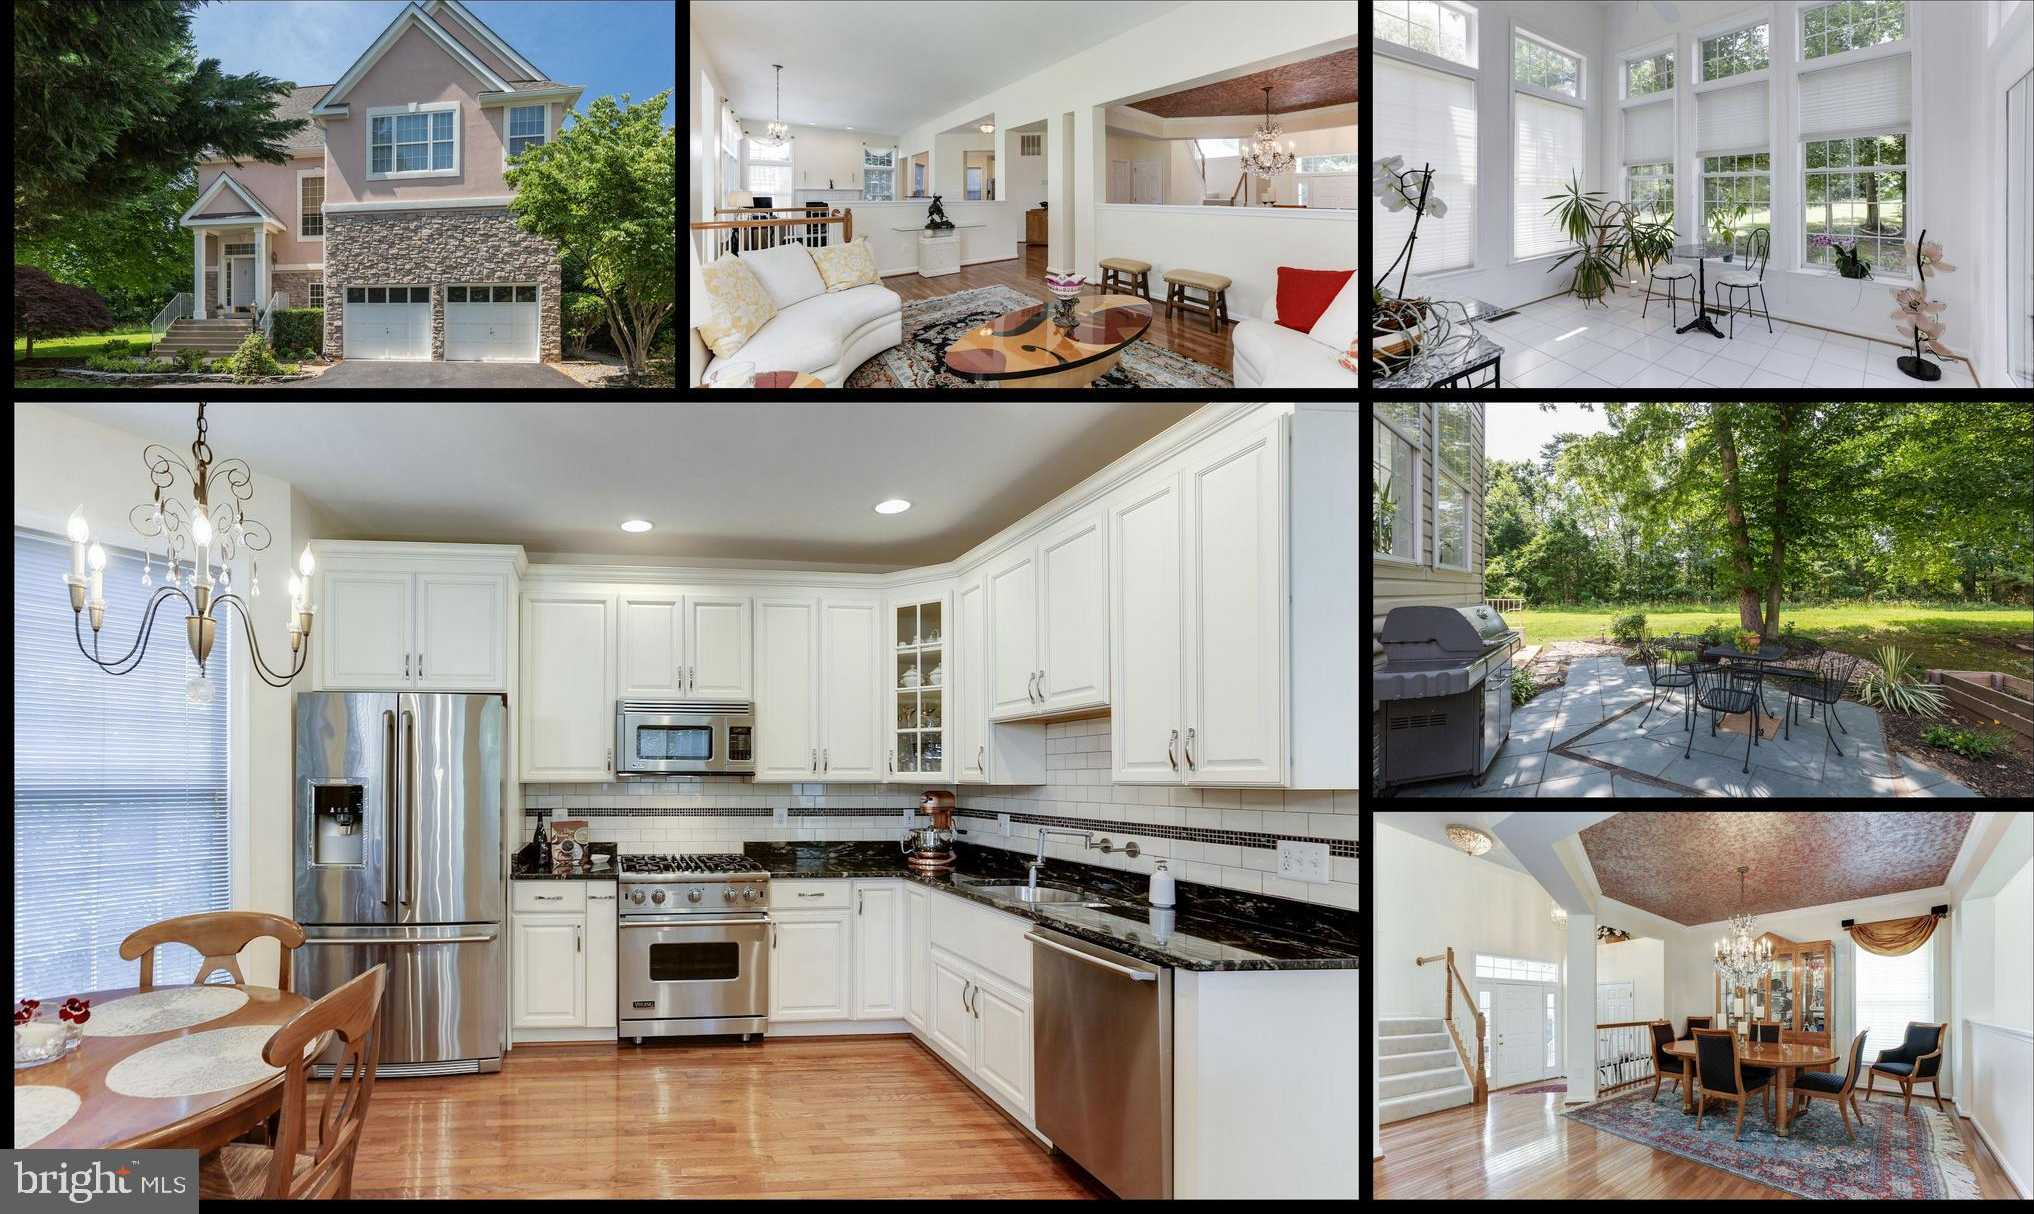 Homes for Sale in Lowes Island - TANA KEEFFE - LONG AND FOSTER